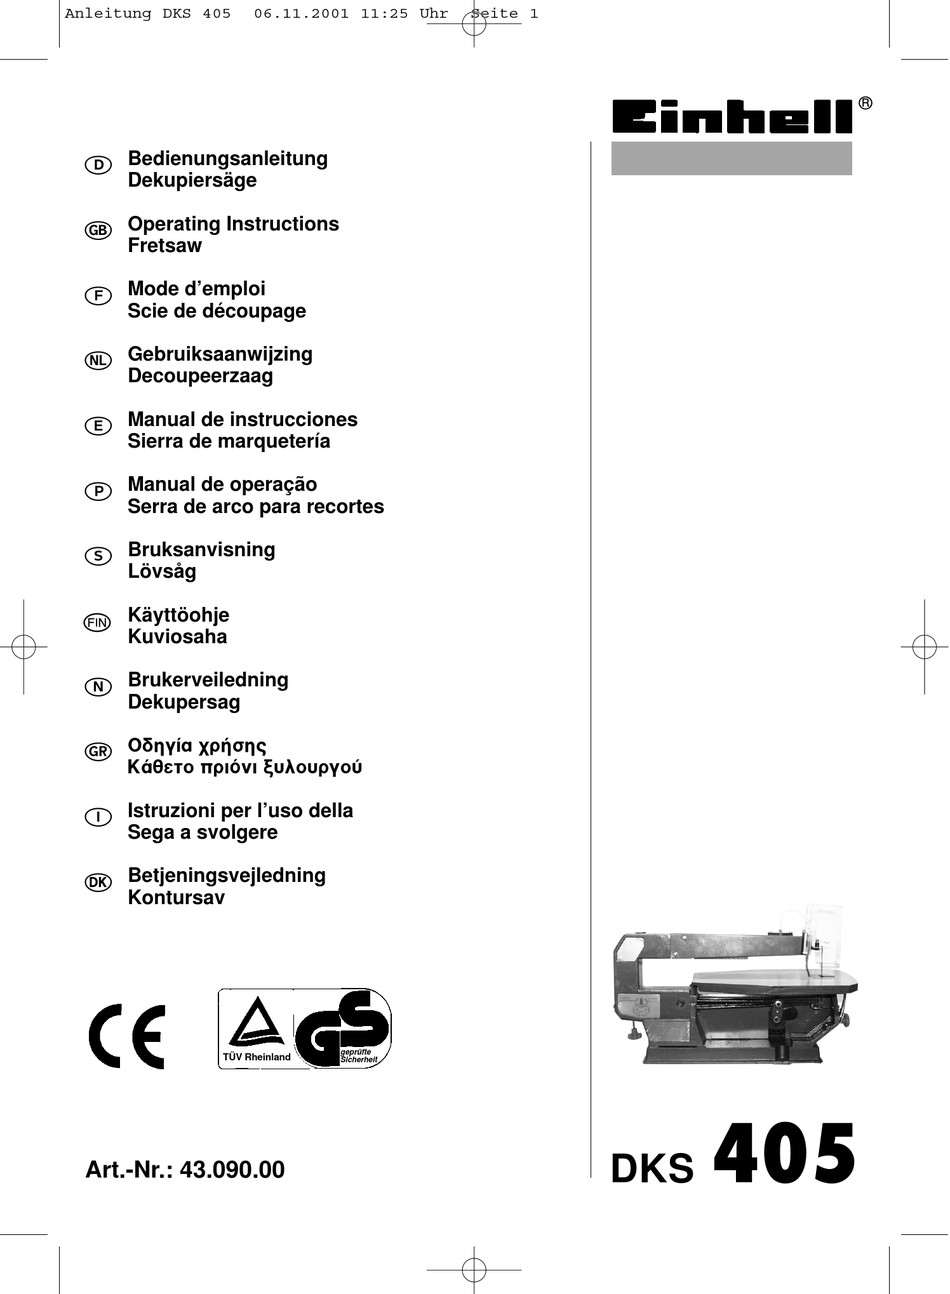 EINHELL DKS 405 OPERATING INSTRUCTIONS MANUAL Pdf Download